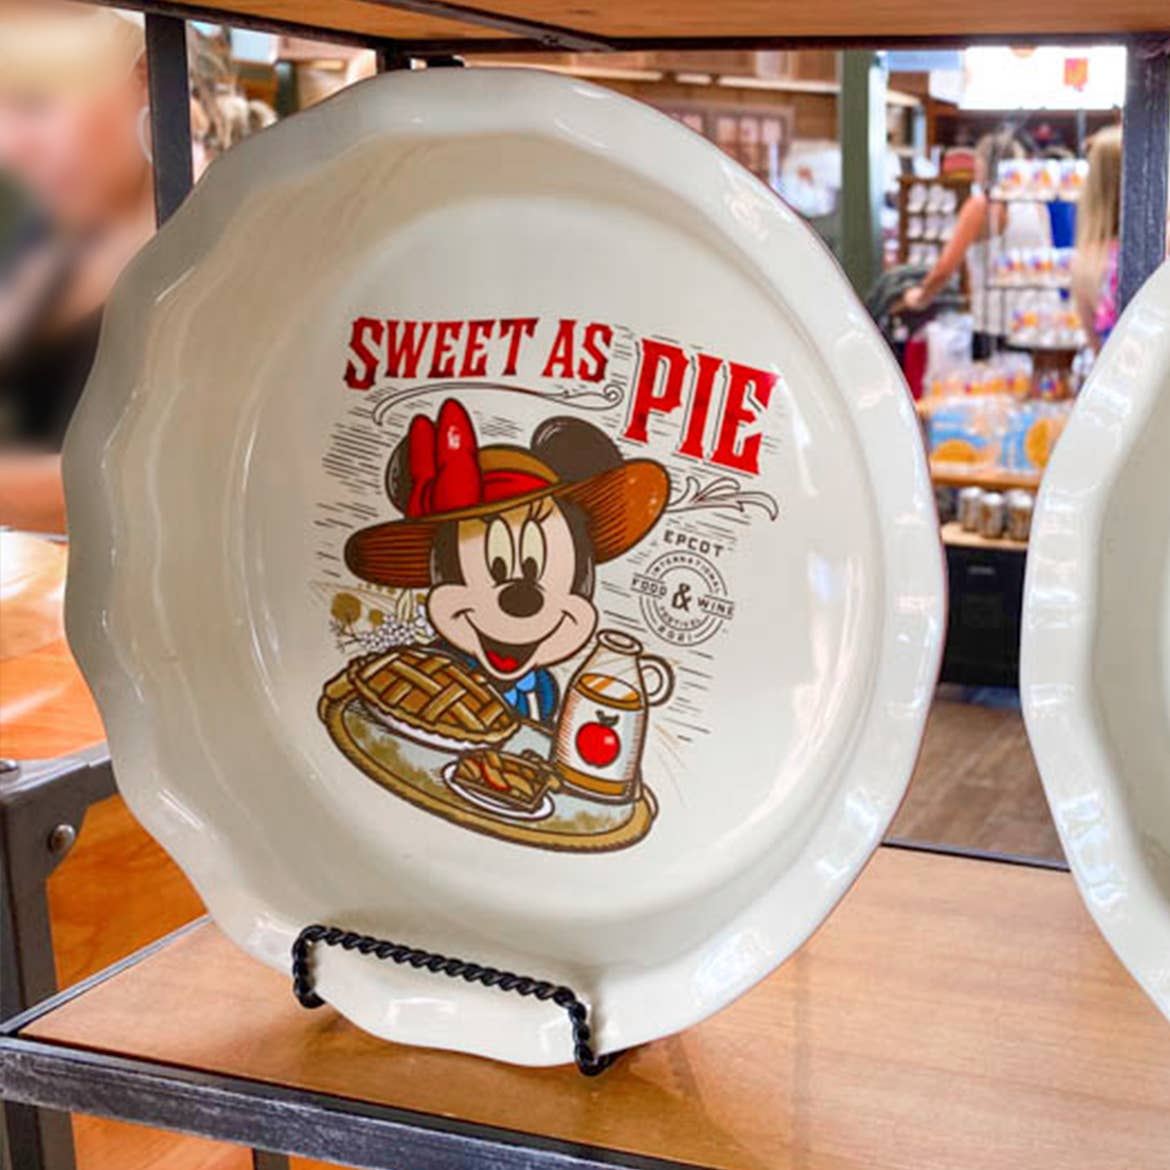 A ceramic pie dish featuring Minnie Mouse in a sunhat reads, 'Sweet as Pie' as it stands propped on a shelf.